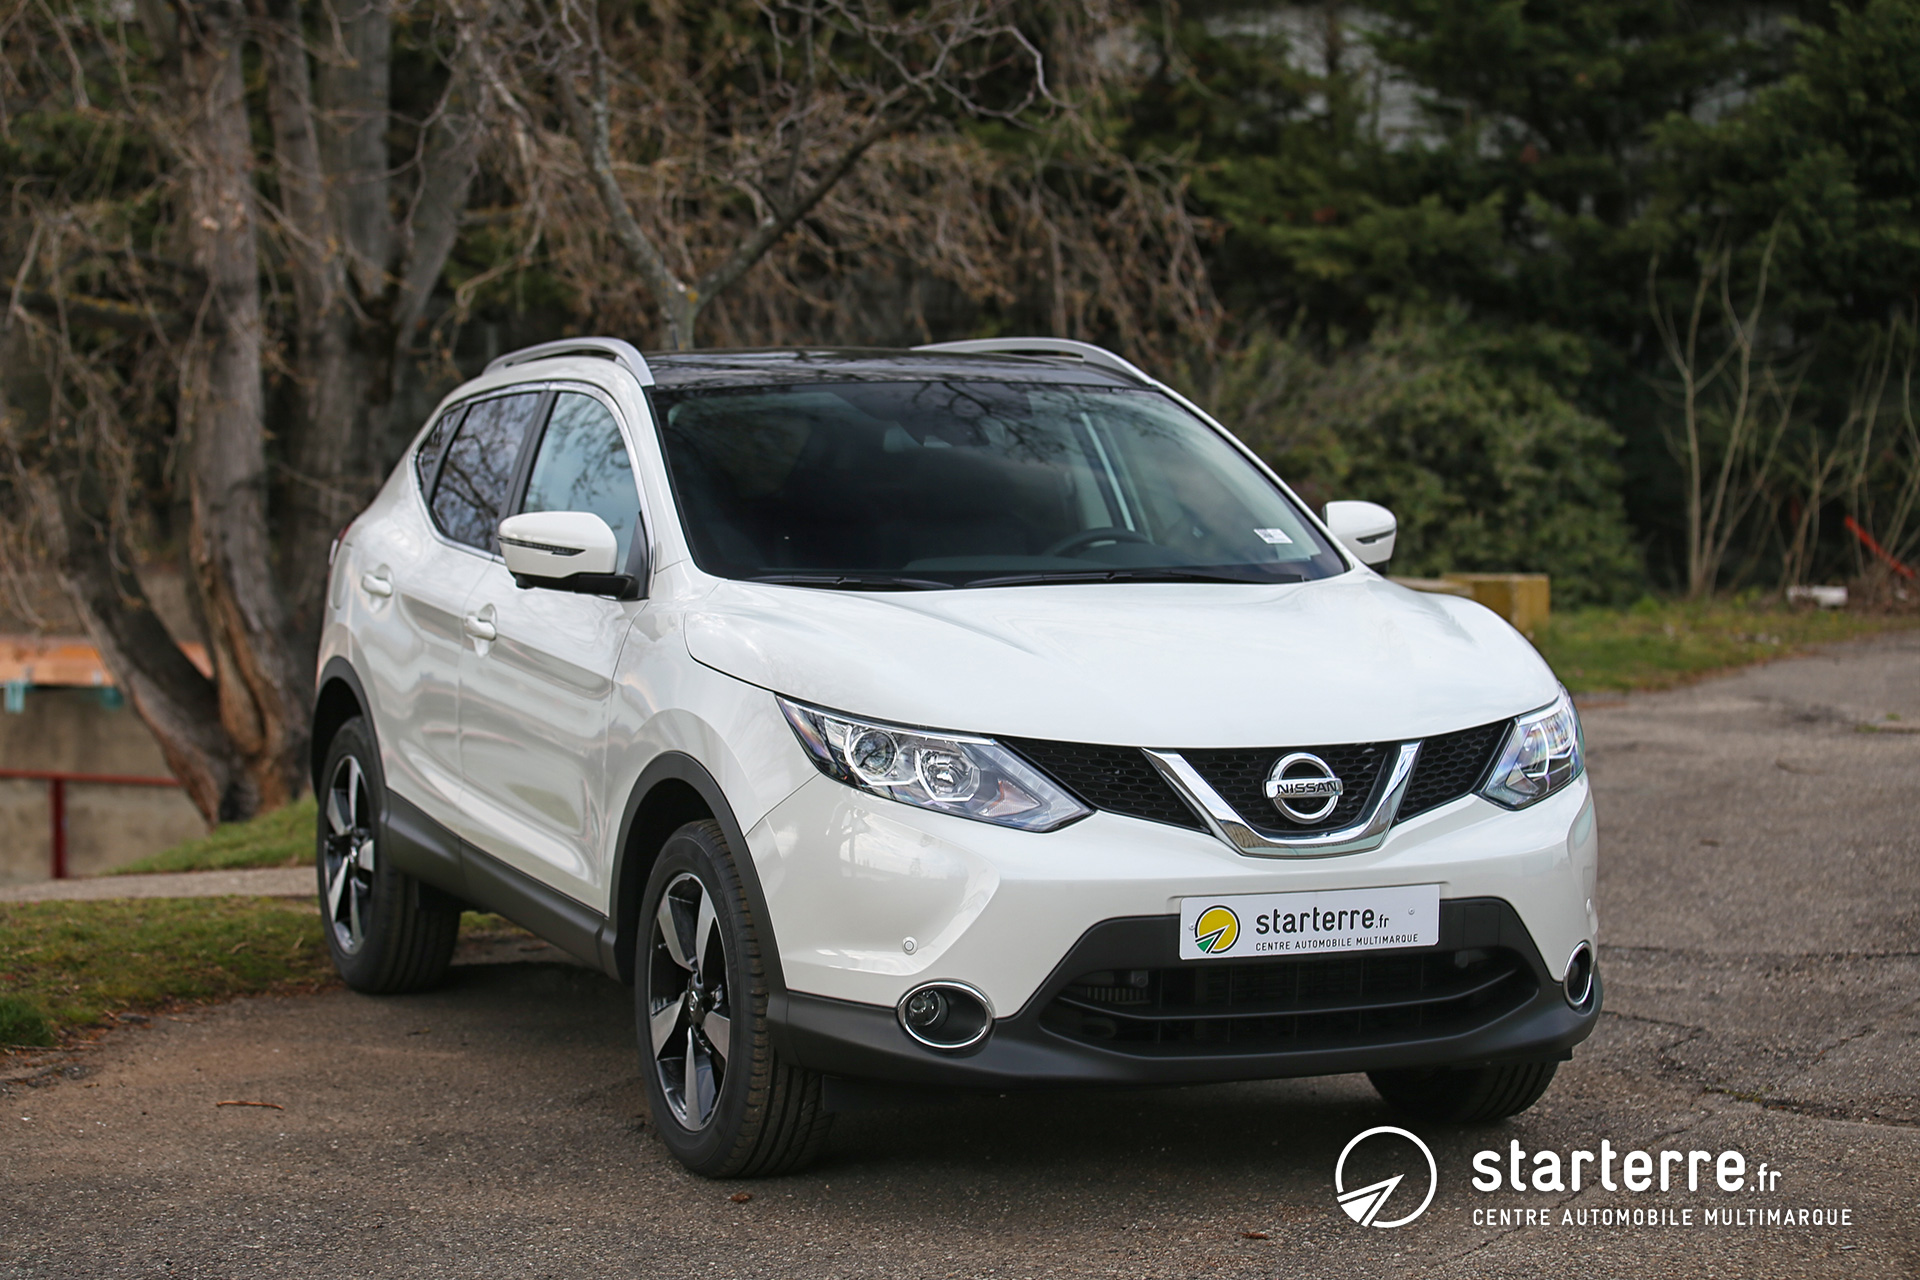 nissan qashqai 1 6 dci 130 all mode 4x4 i connect edition. Black Bedroom Furniture Sets. Home Design Ideas